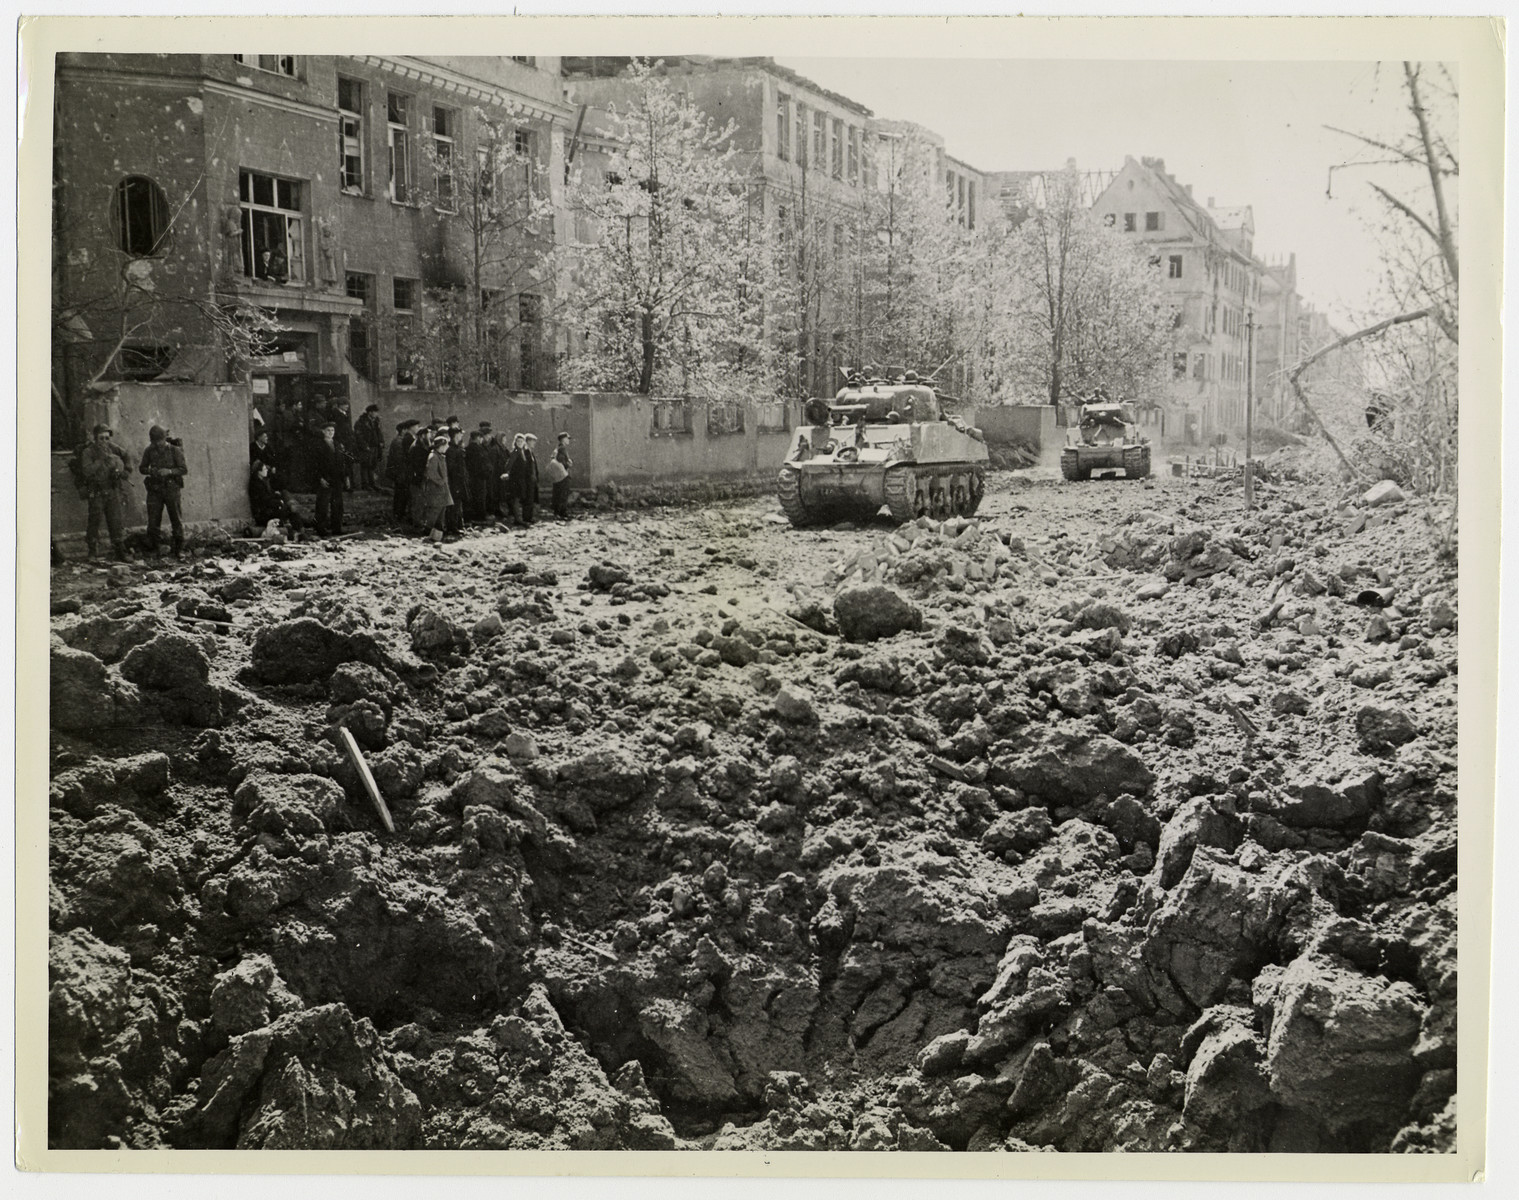 """U.S tanks advance through Schweinfurt.   Original caption reads: """"Liberated Russian victims of the Nazi forced labor system (left) watch as tanks of the 12th Armored Division, Seventh U.S. Army, rumble past shattered buildings in Schweinfurt, Germany.shortly after fall of the town April 11, 1945. Schweinfurt, heavily bombed and shelled before entry of Seventh Army ground forces, had been a main source of ball bearings for Nazi armament,. It is 86 miles east of the Rhine River and Mainz""""."""